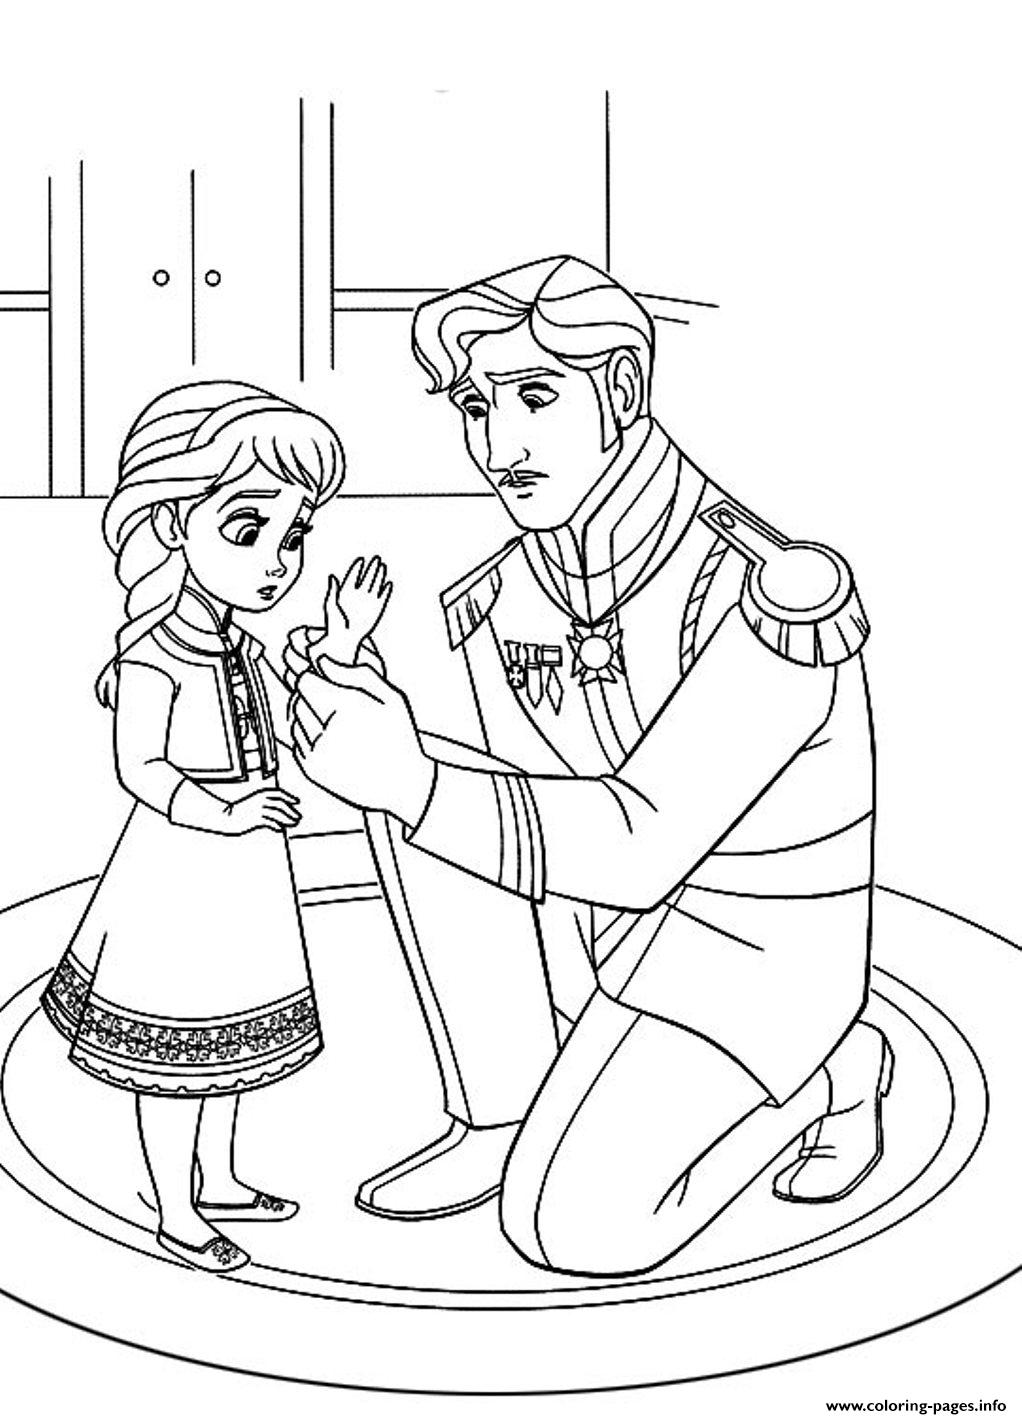 Free Frozen D500 coloring pages